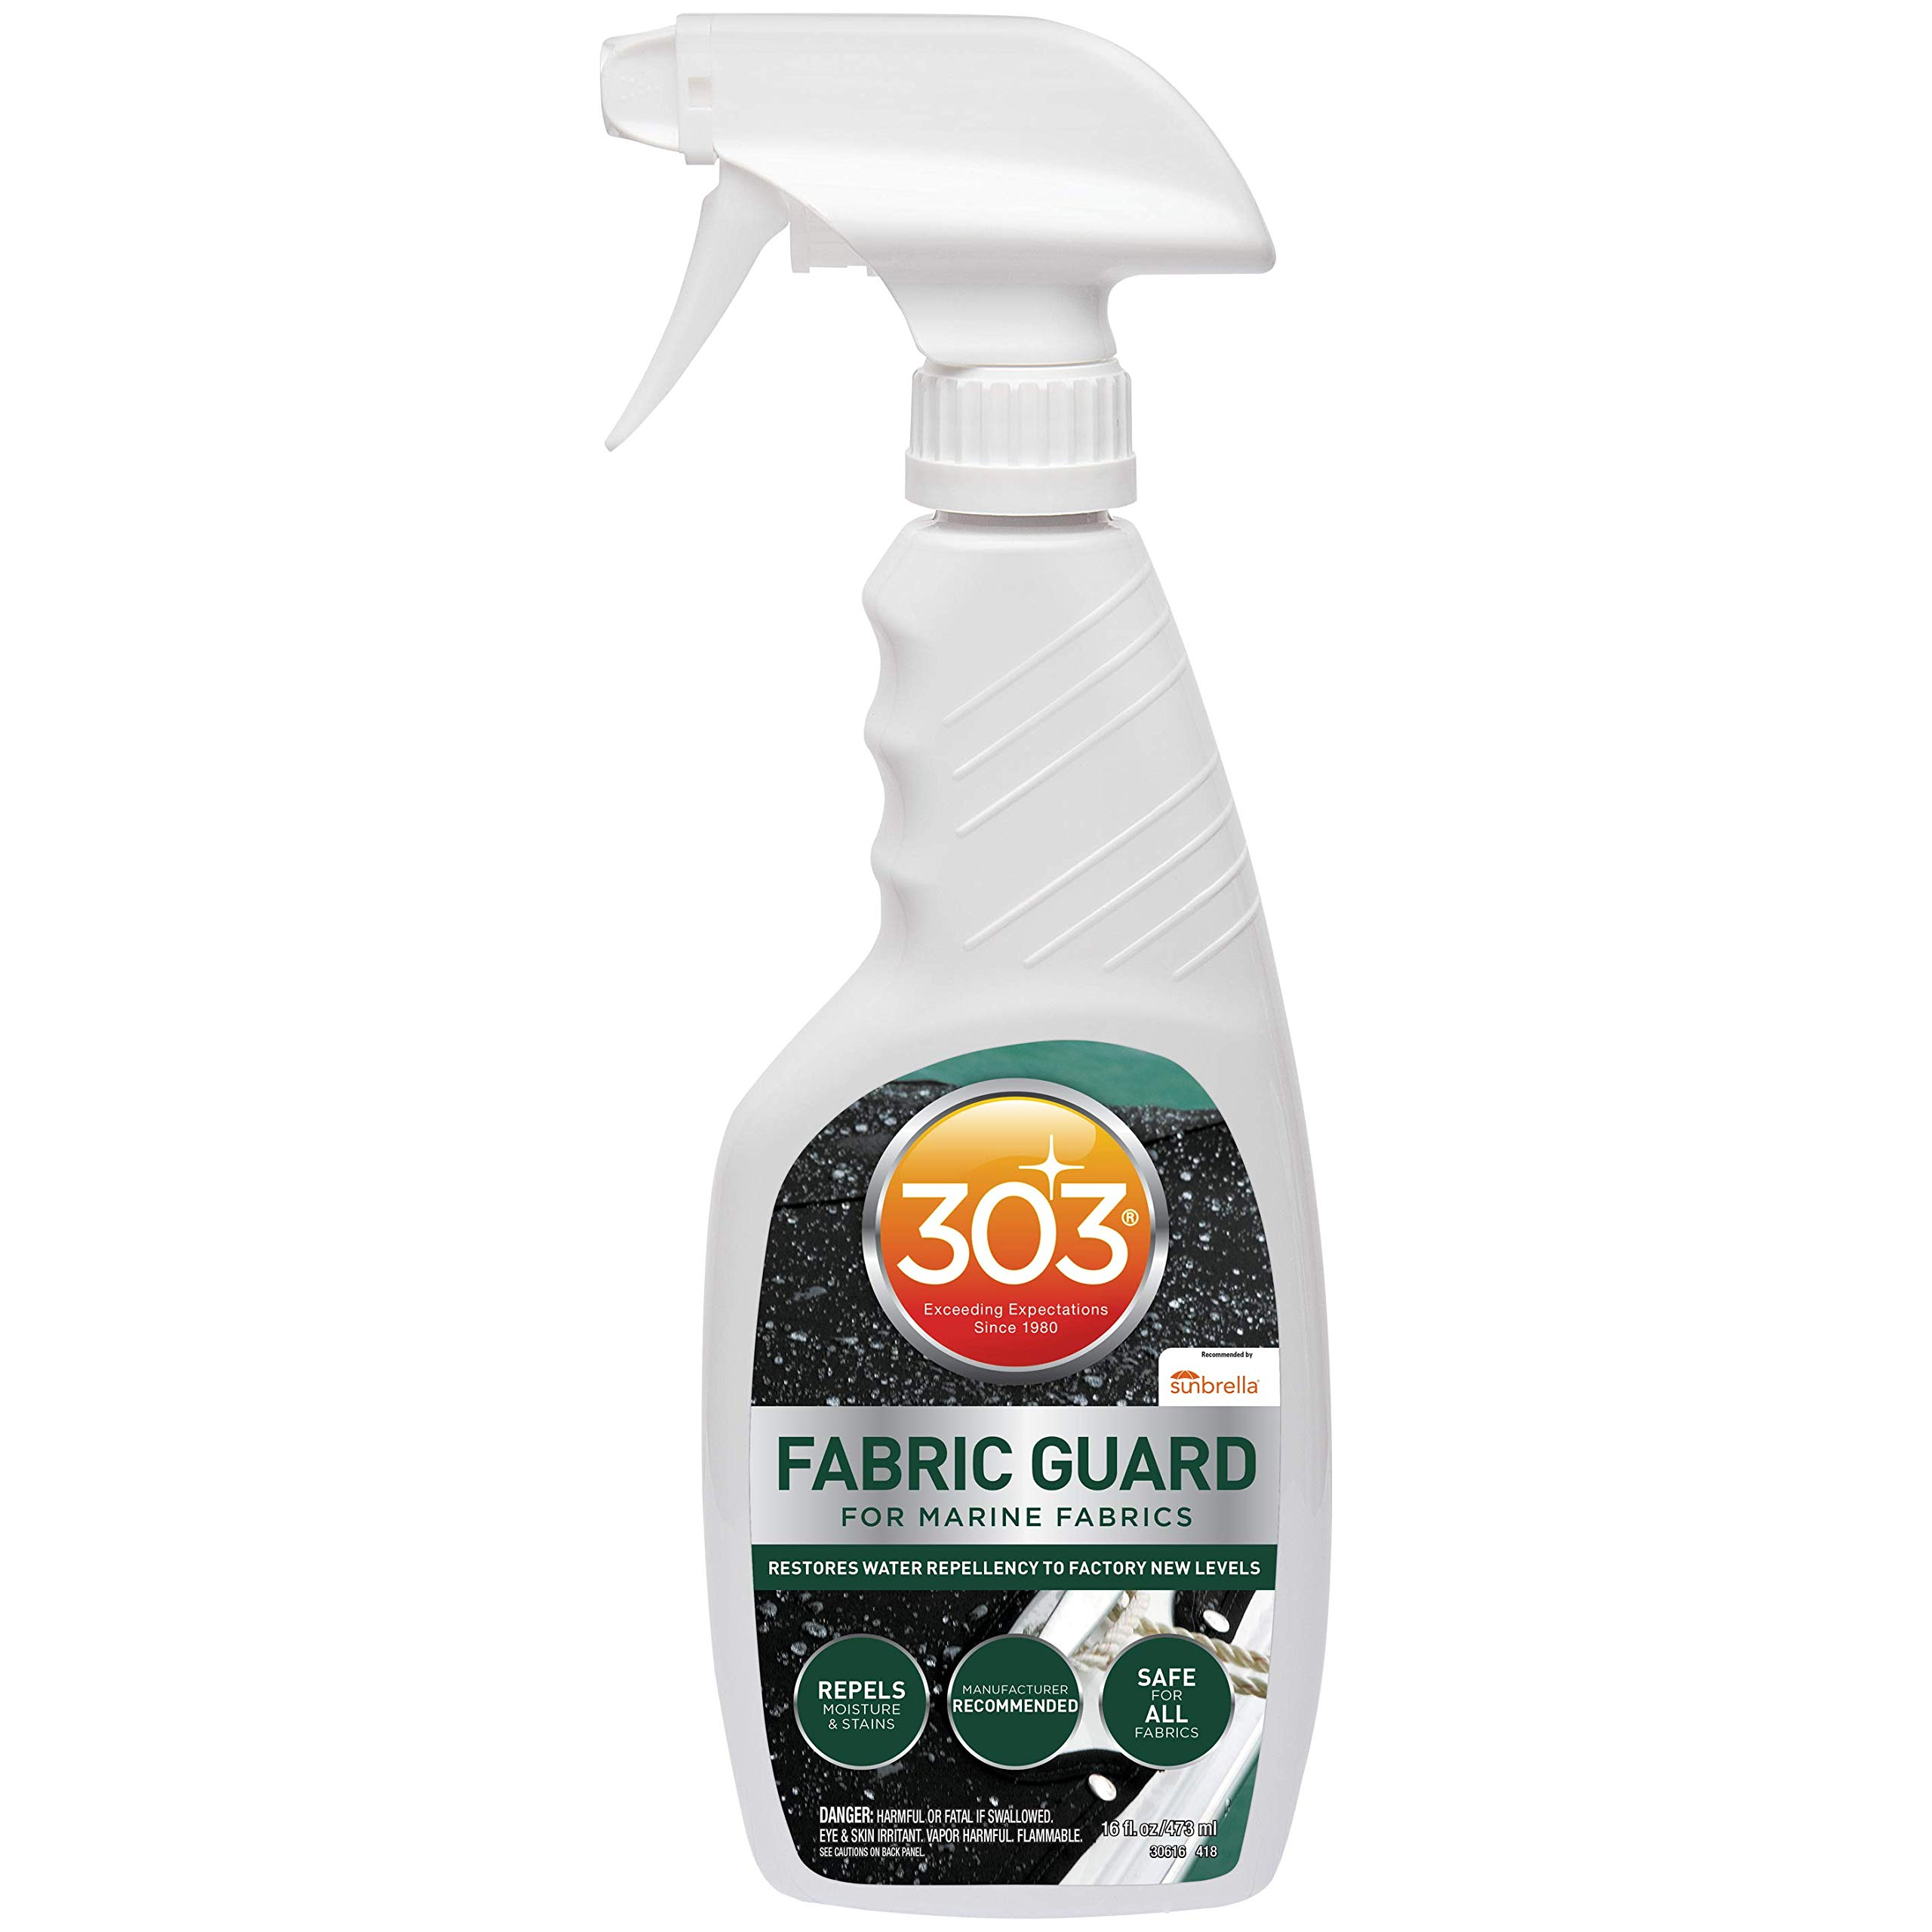 303 (30616CSR-6PK) Fabric Guard, Upholstery Protector, Water and Stain Repellent, 16 fl. oz., Pack of 6 by 303 Products (Image #1)